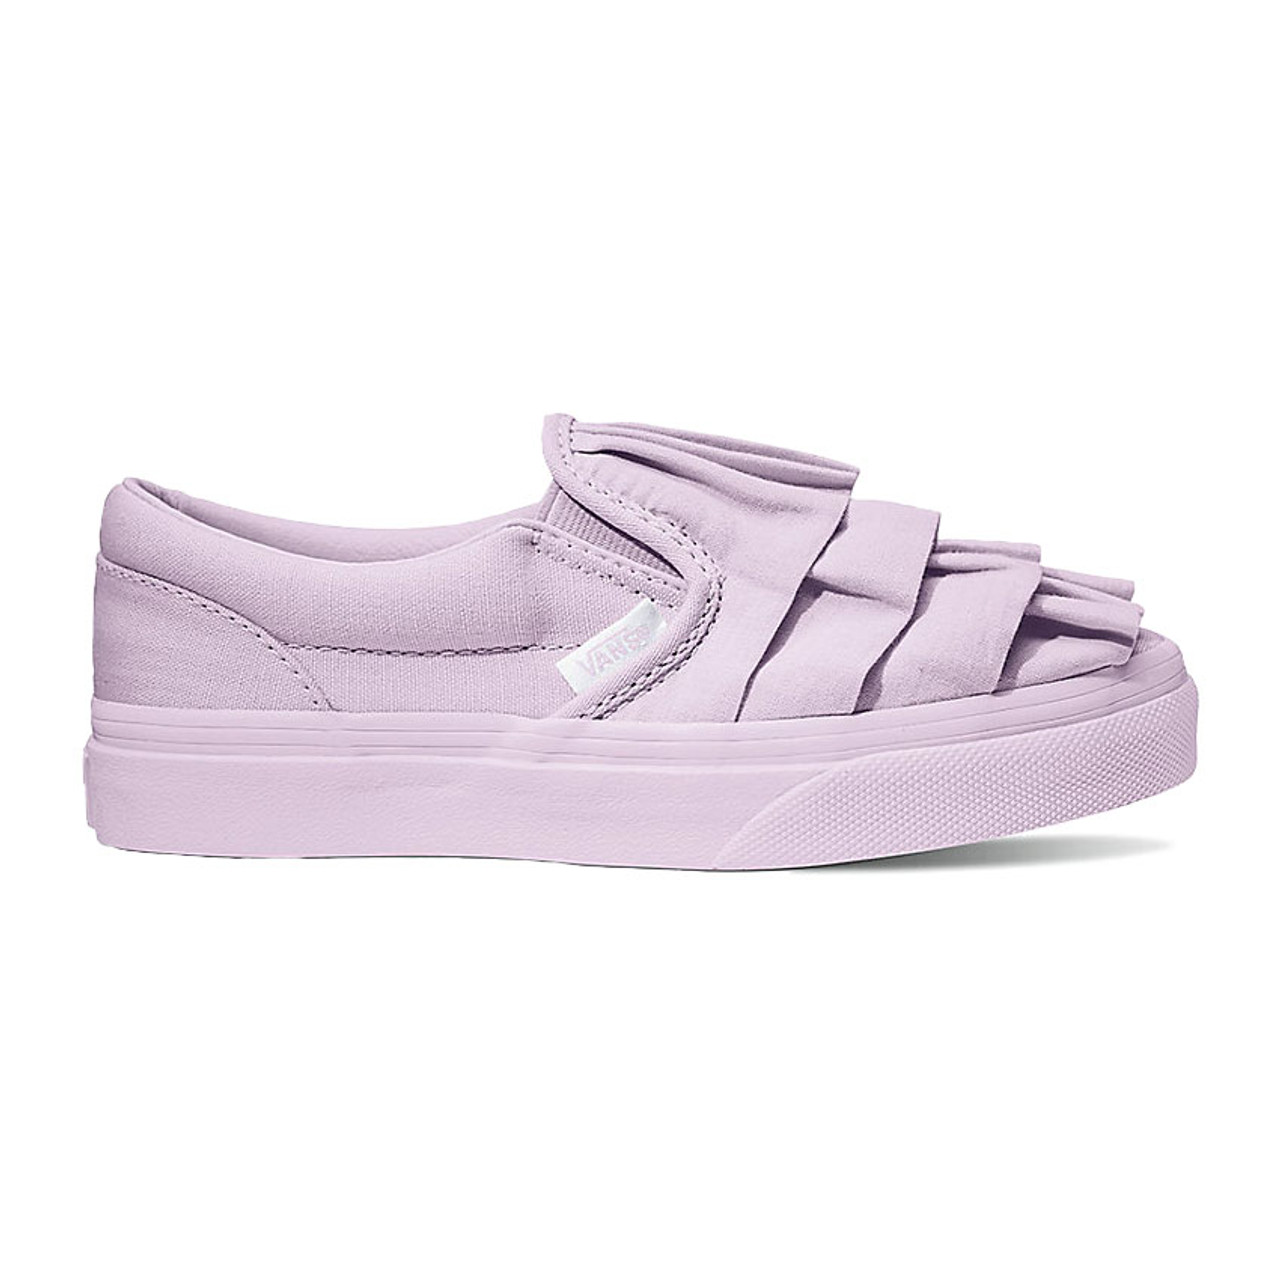 28f8e07019ad Vans Youth Shoes - Classic Slip-On - Lavender Fog - Surf and Dirt